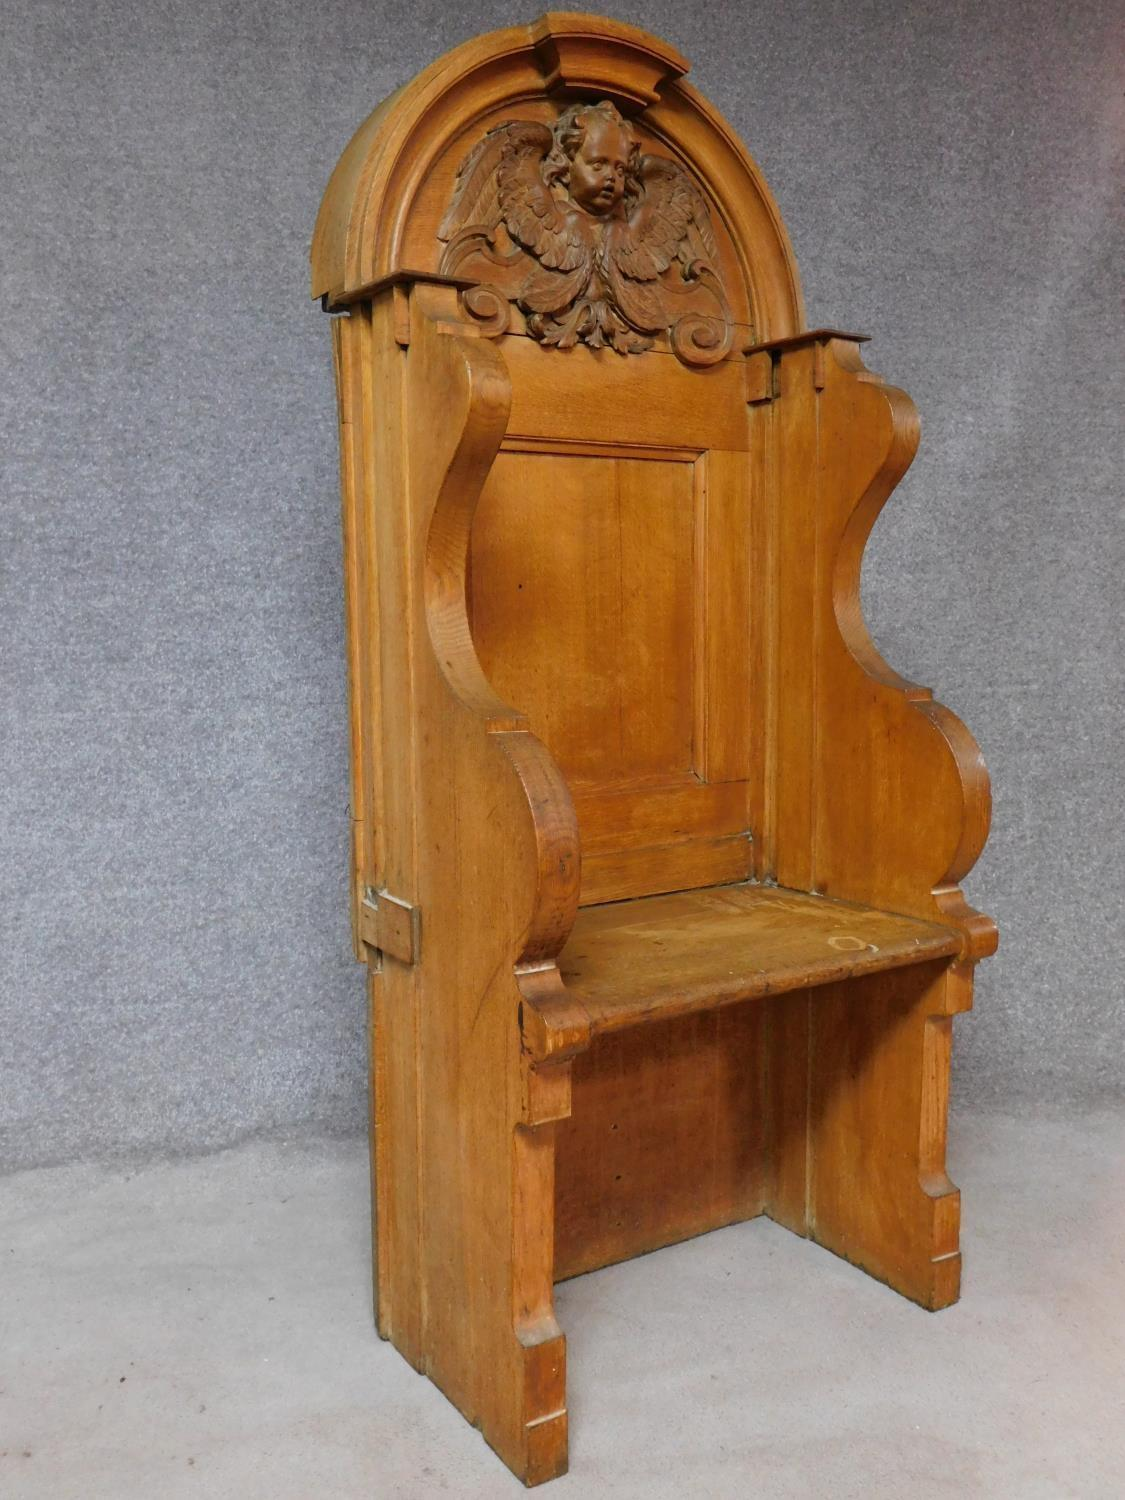 A 19th century oak hall bench with cherub carved mask above panel back on solid seat. H.169 W.75 D. - Image 2 of 7